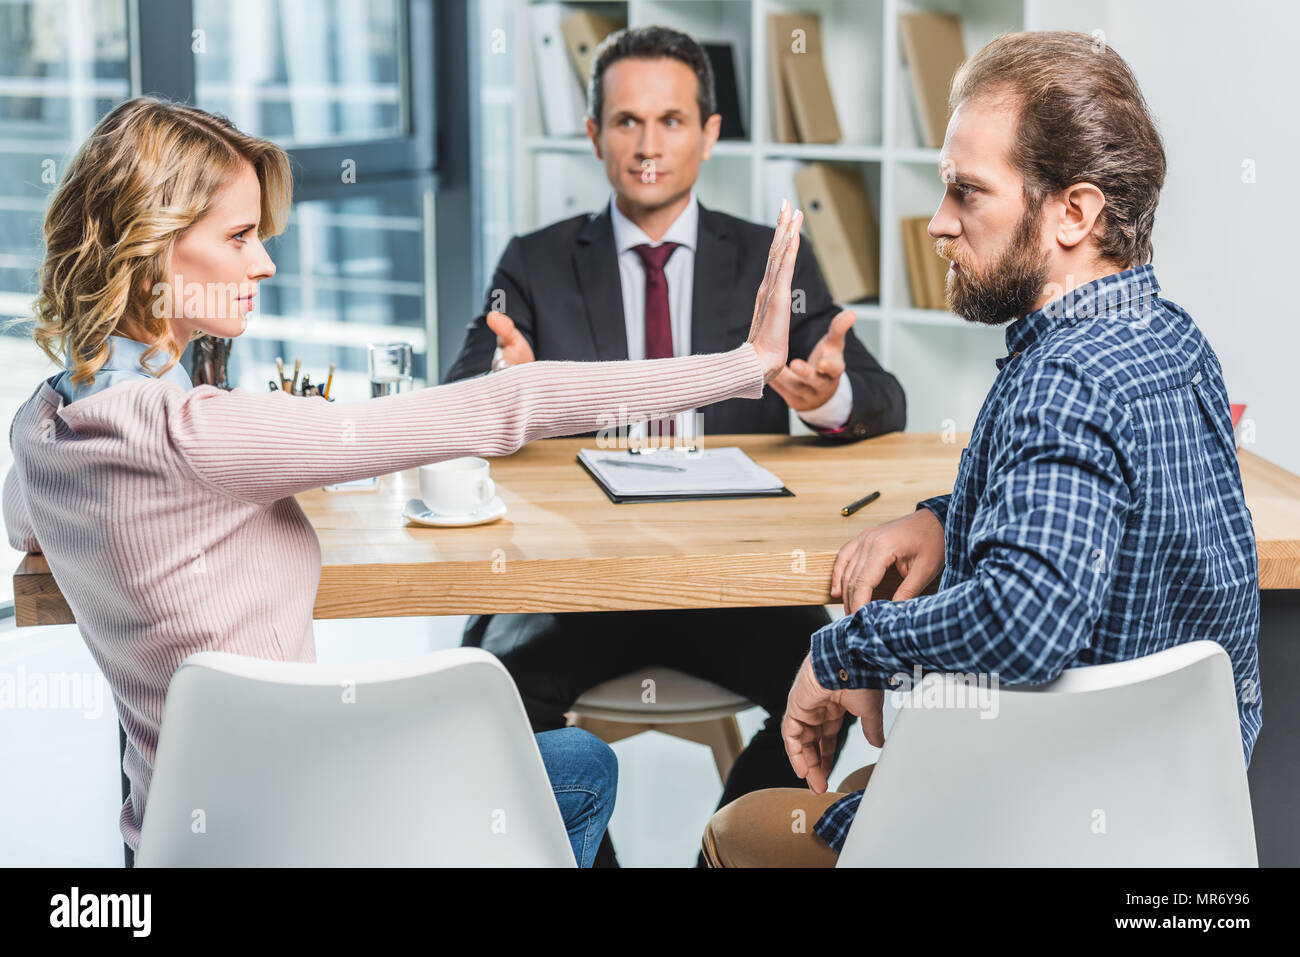 side view of couple arguing at workplace in lawyer office - Stock Image